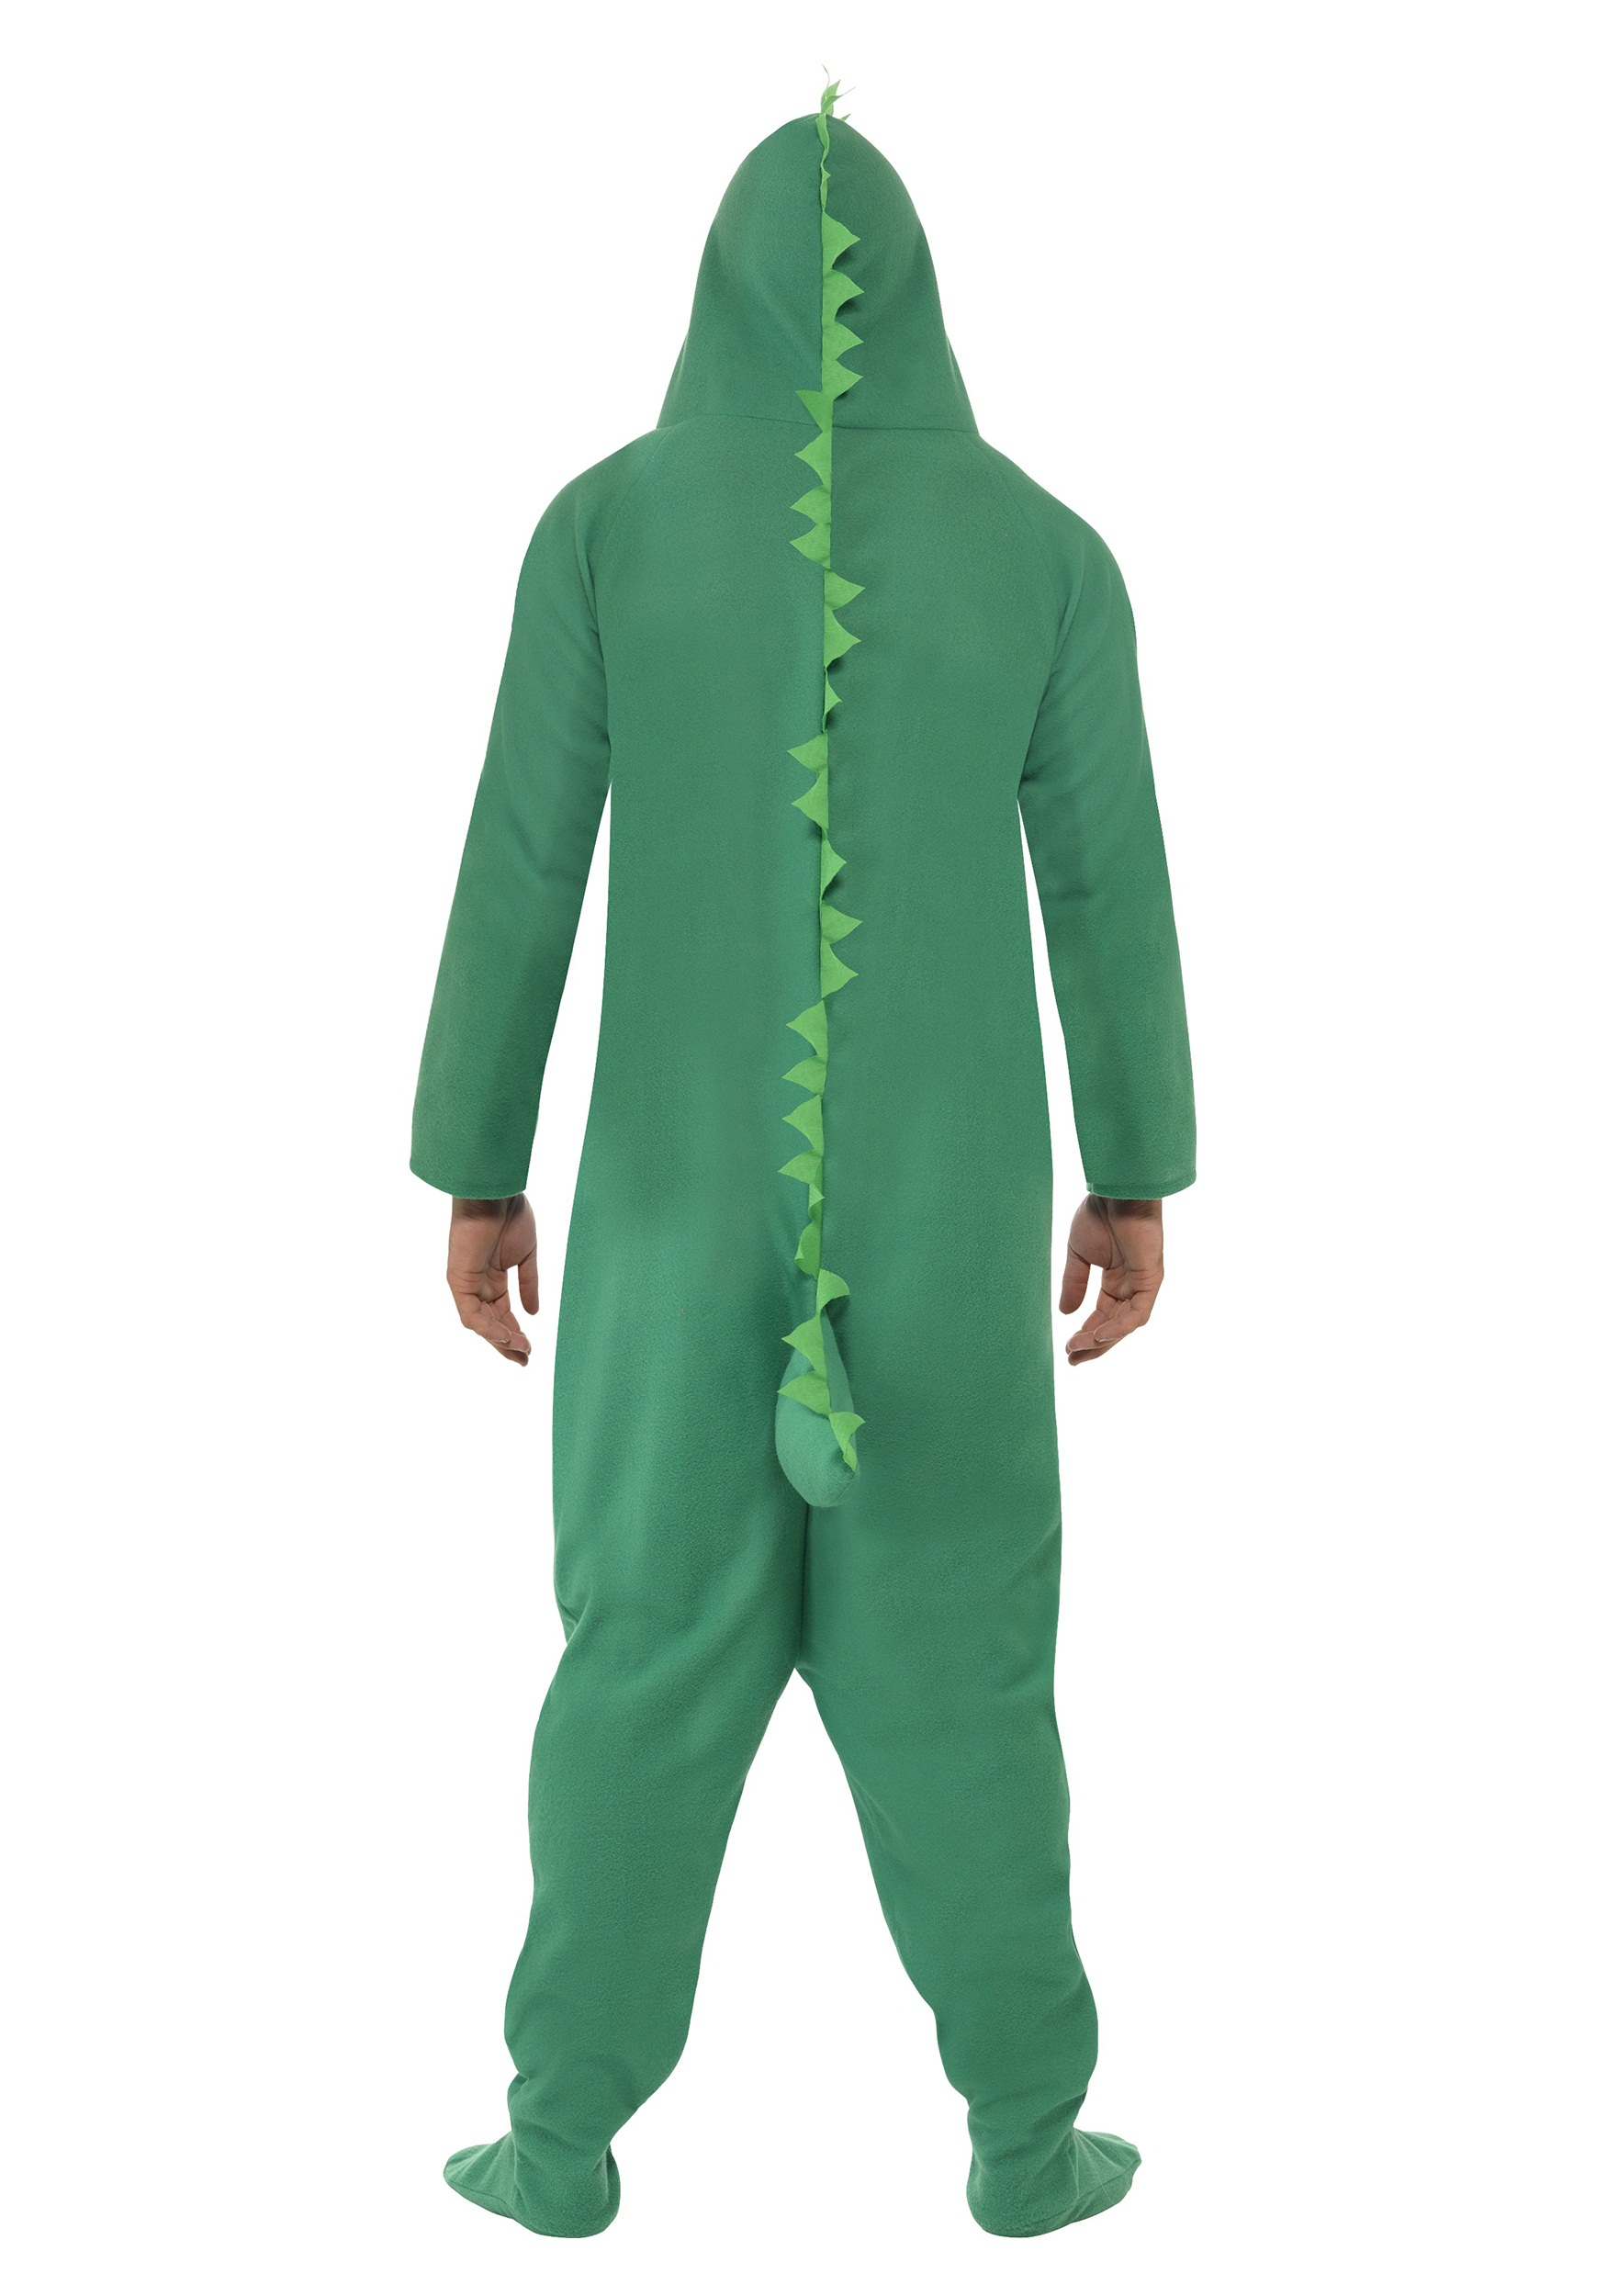 Adult Alligator Costume 100